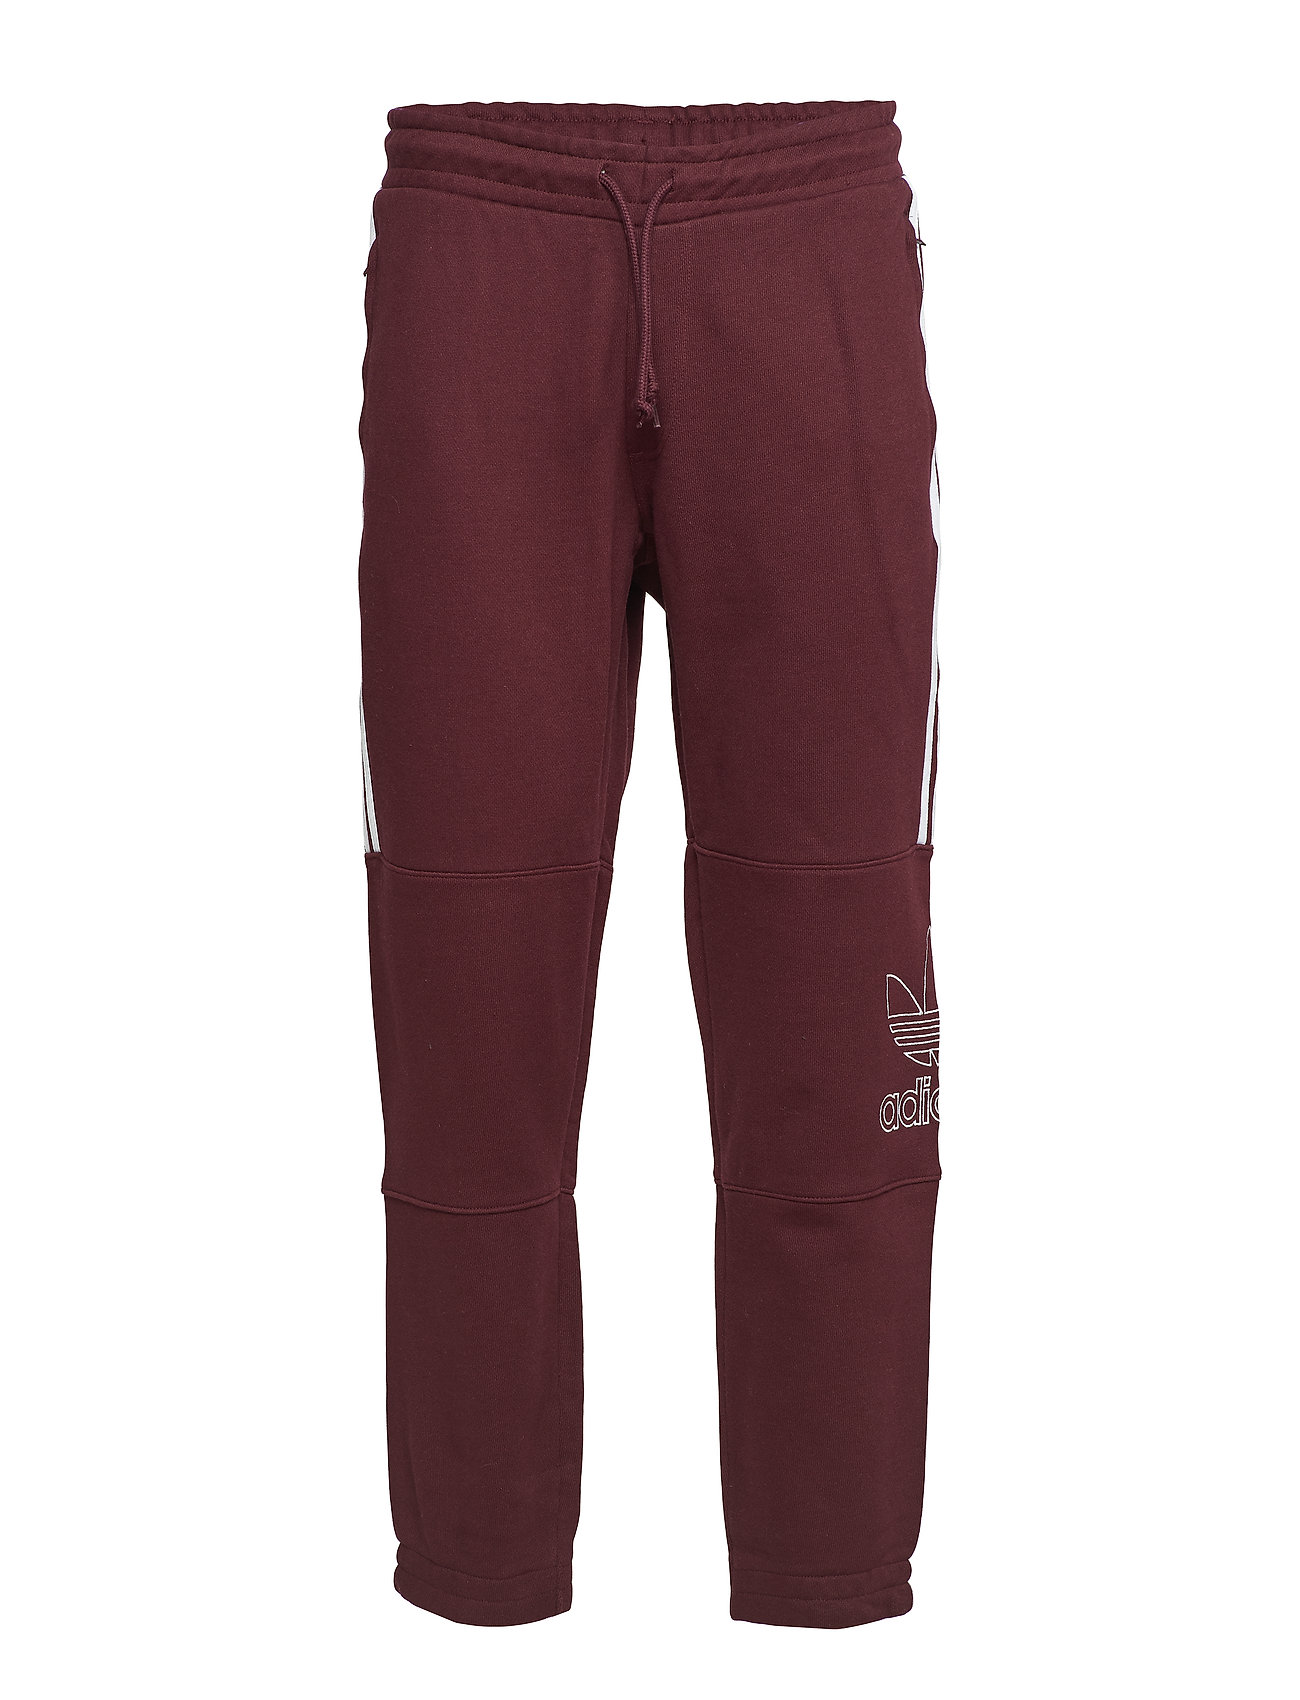 a47043a7866 MAROON Adidas Outline Pant bukser for herre - Pashion.dk